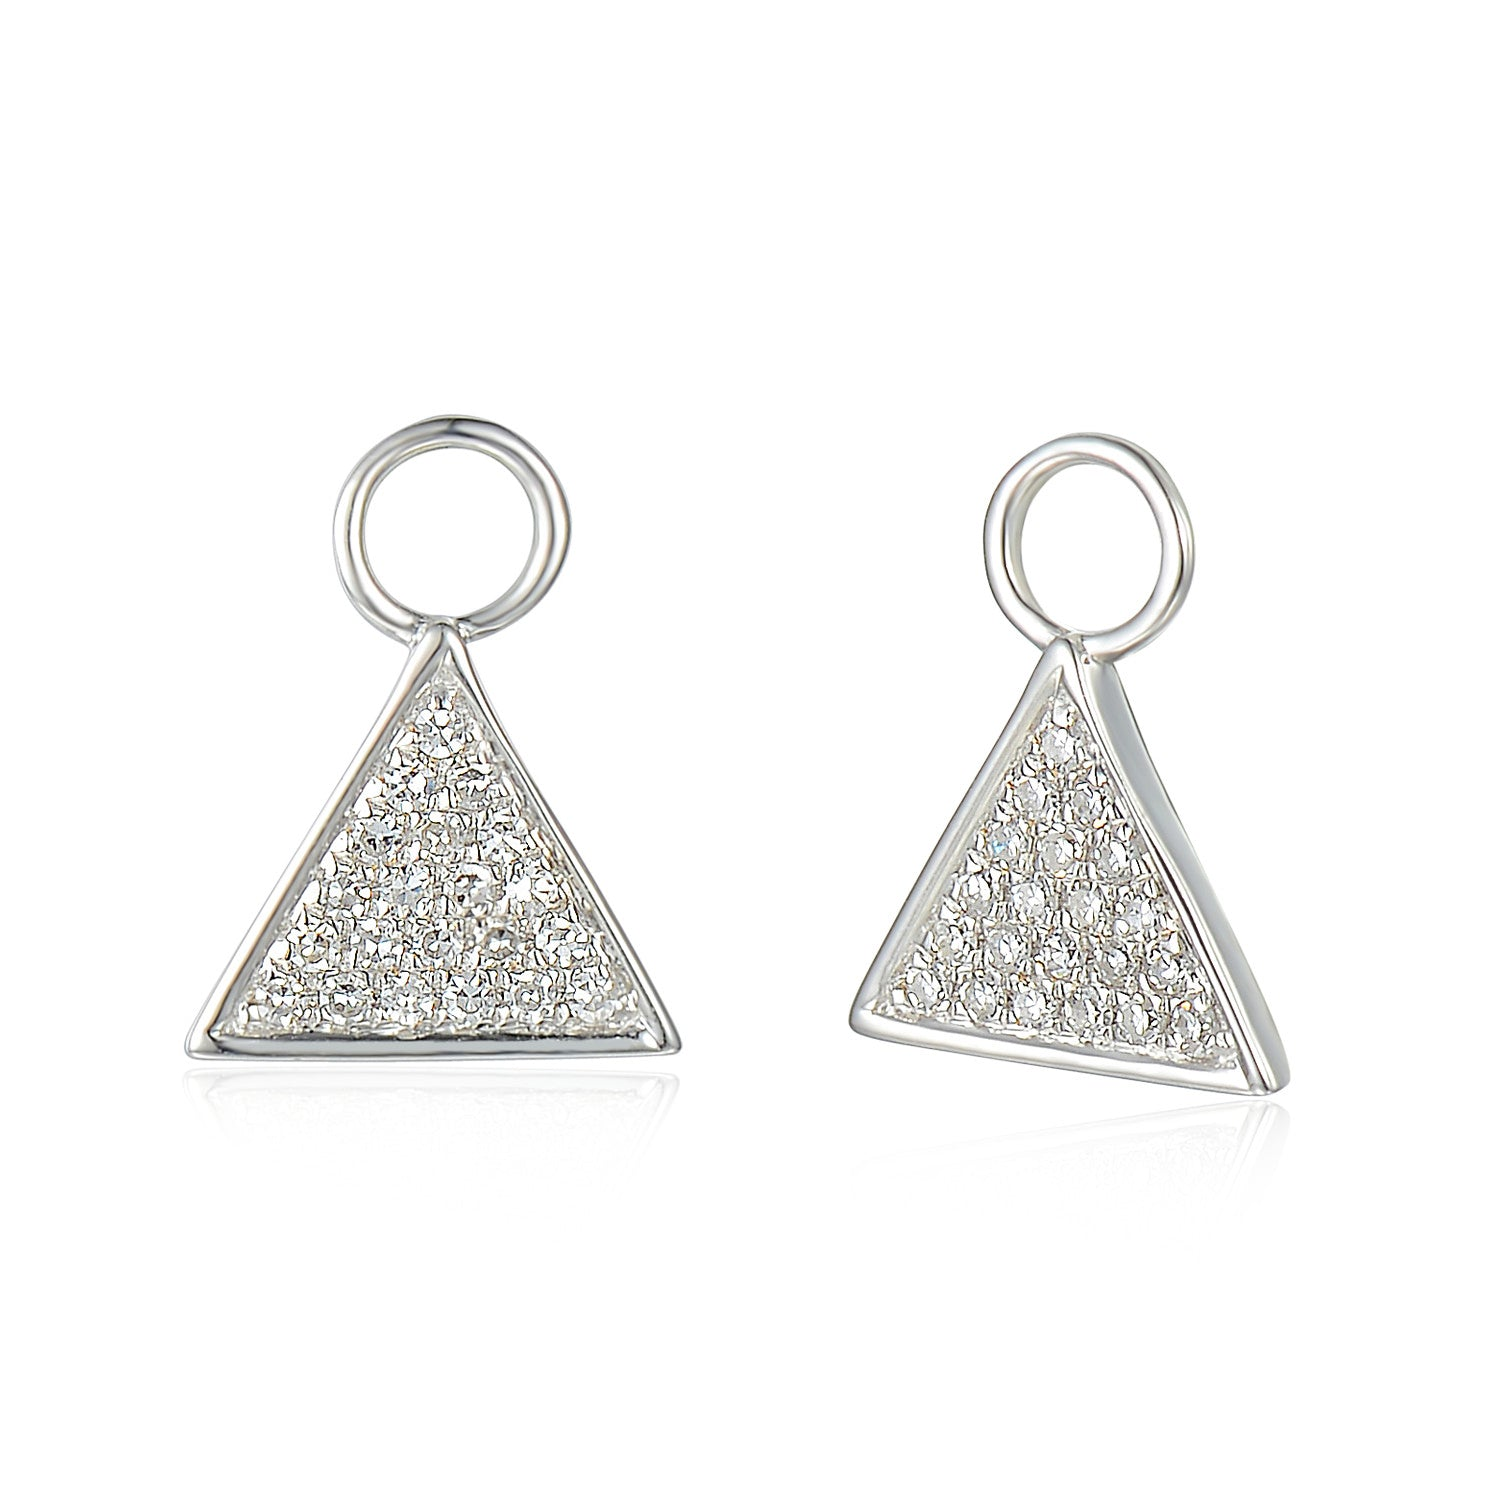 7b3b539a0 ... 18ct White Gold Diamond Sleeper Hoop With Hanging Interchangeable  Triangle Charm ...